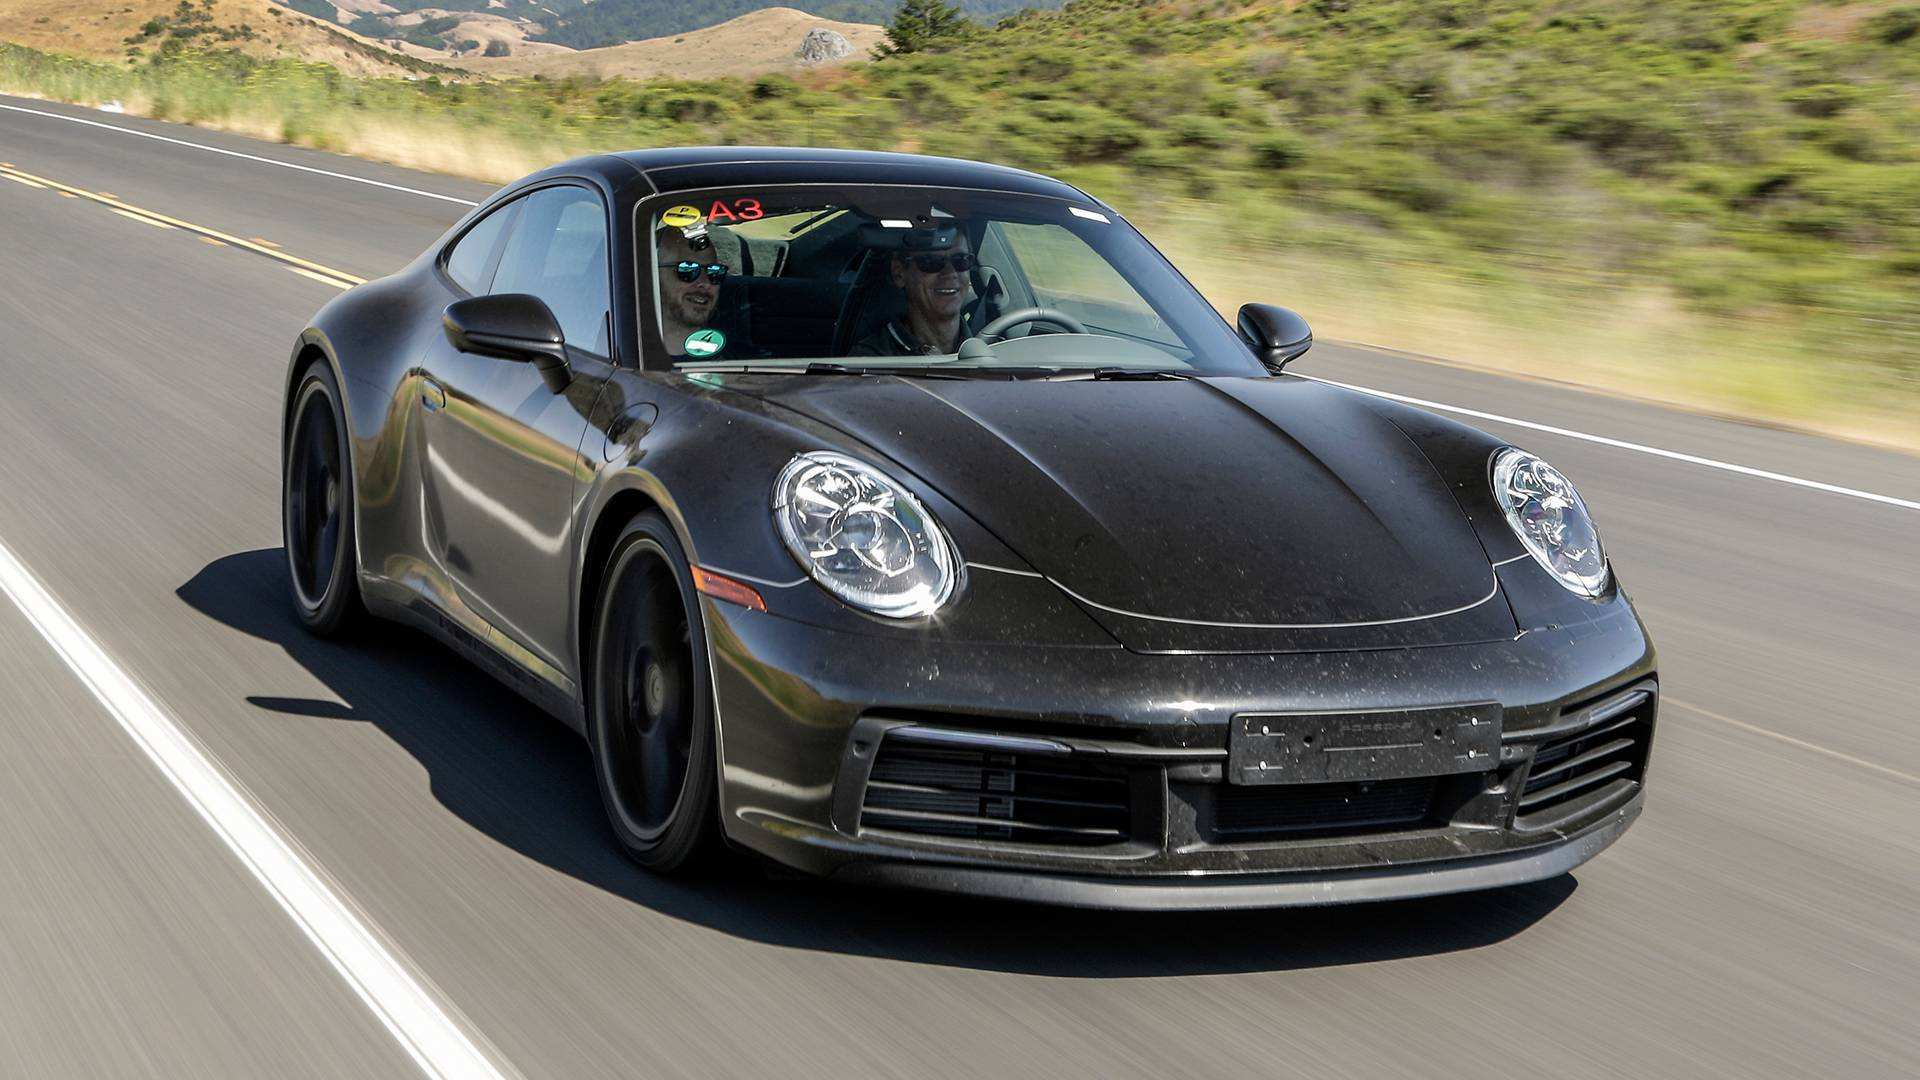 13 All New 2020 Porsche 911 Carrera Spesification for 2020 Porsche 911 Carrera